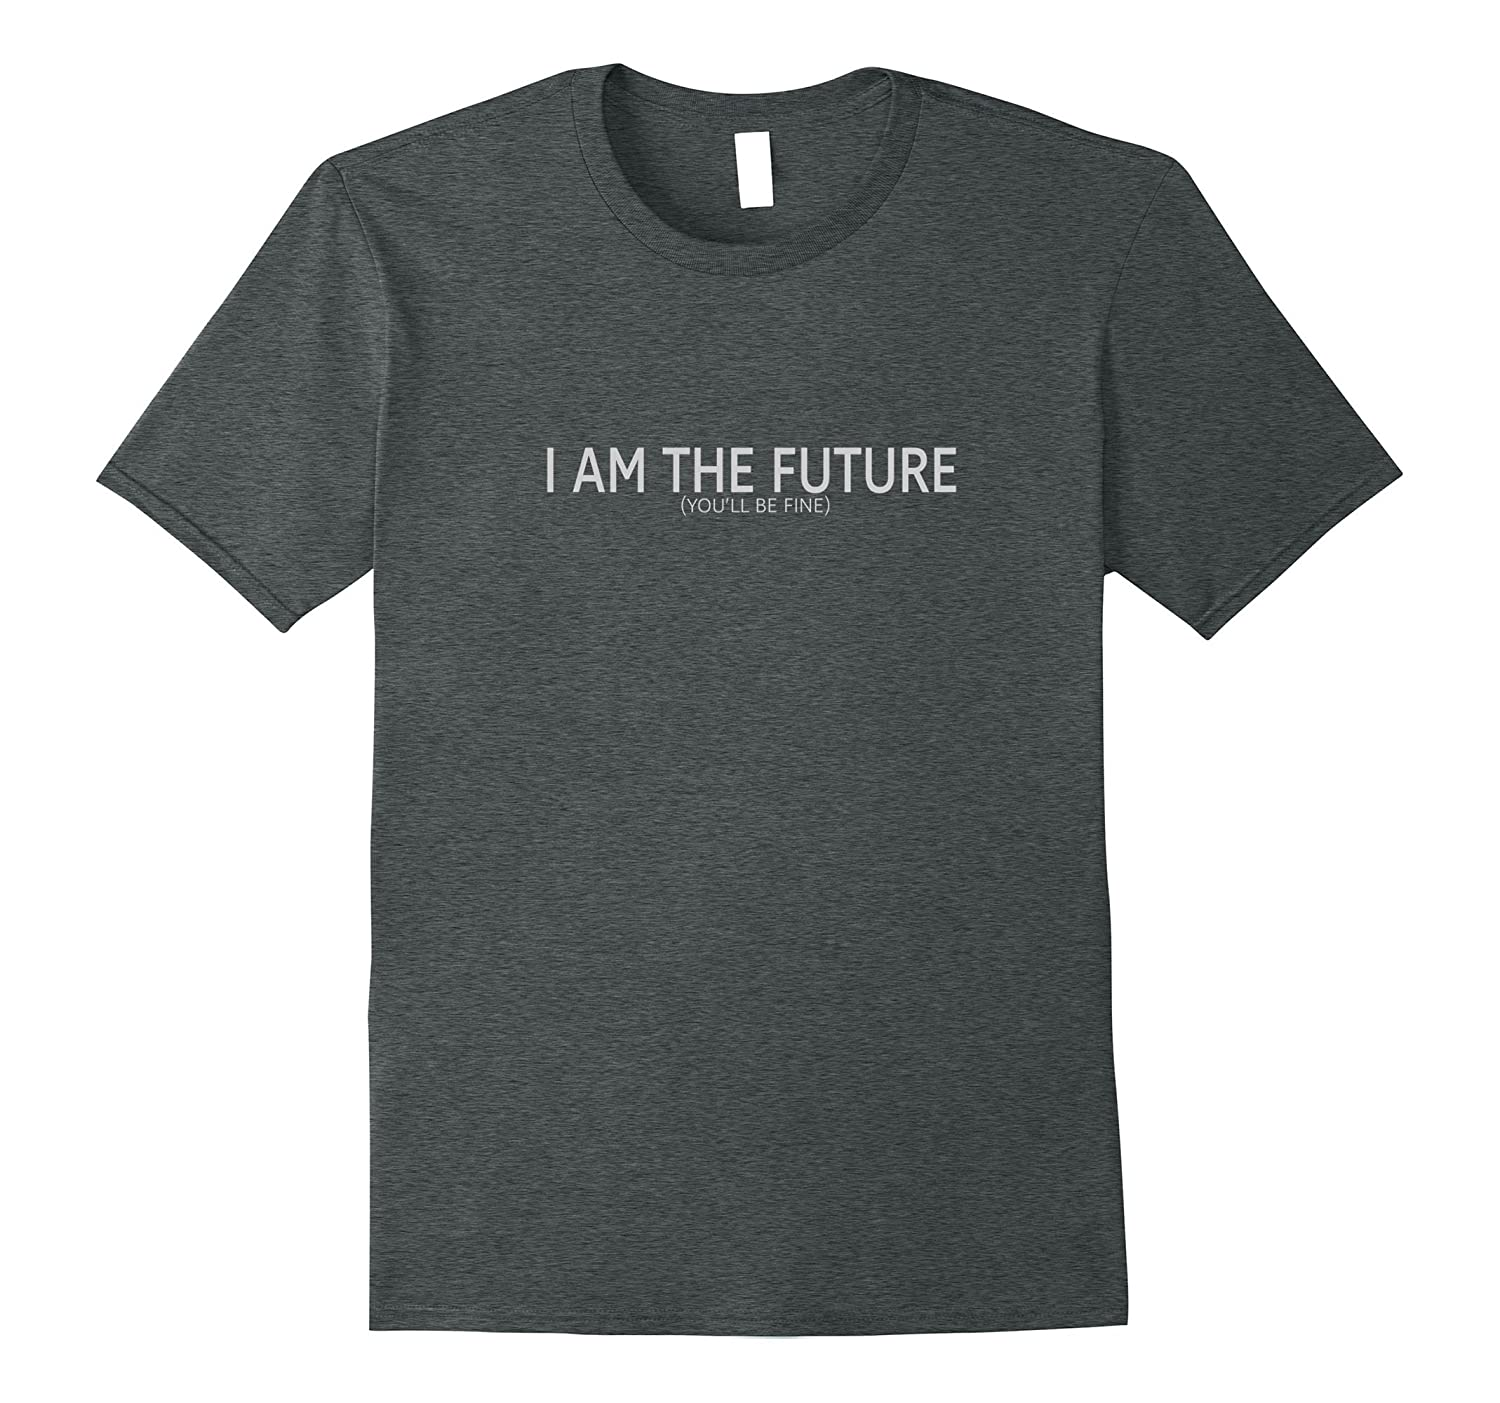 I AM THE FUTURE YOULL BE FINE T-SHIRT-Vaci